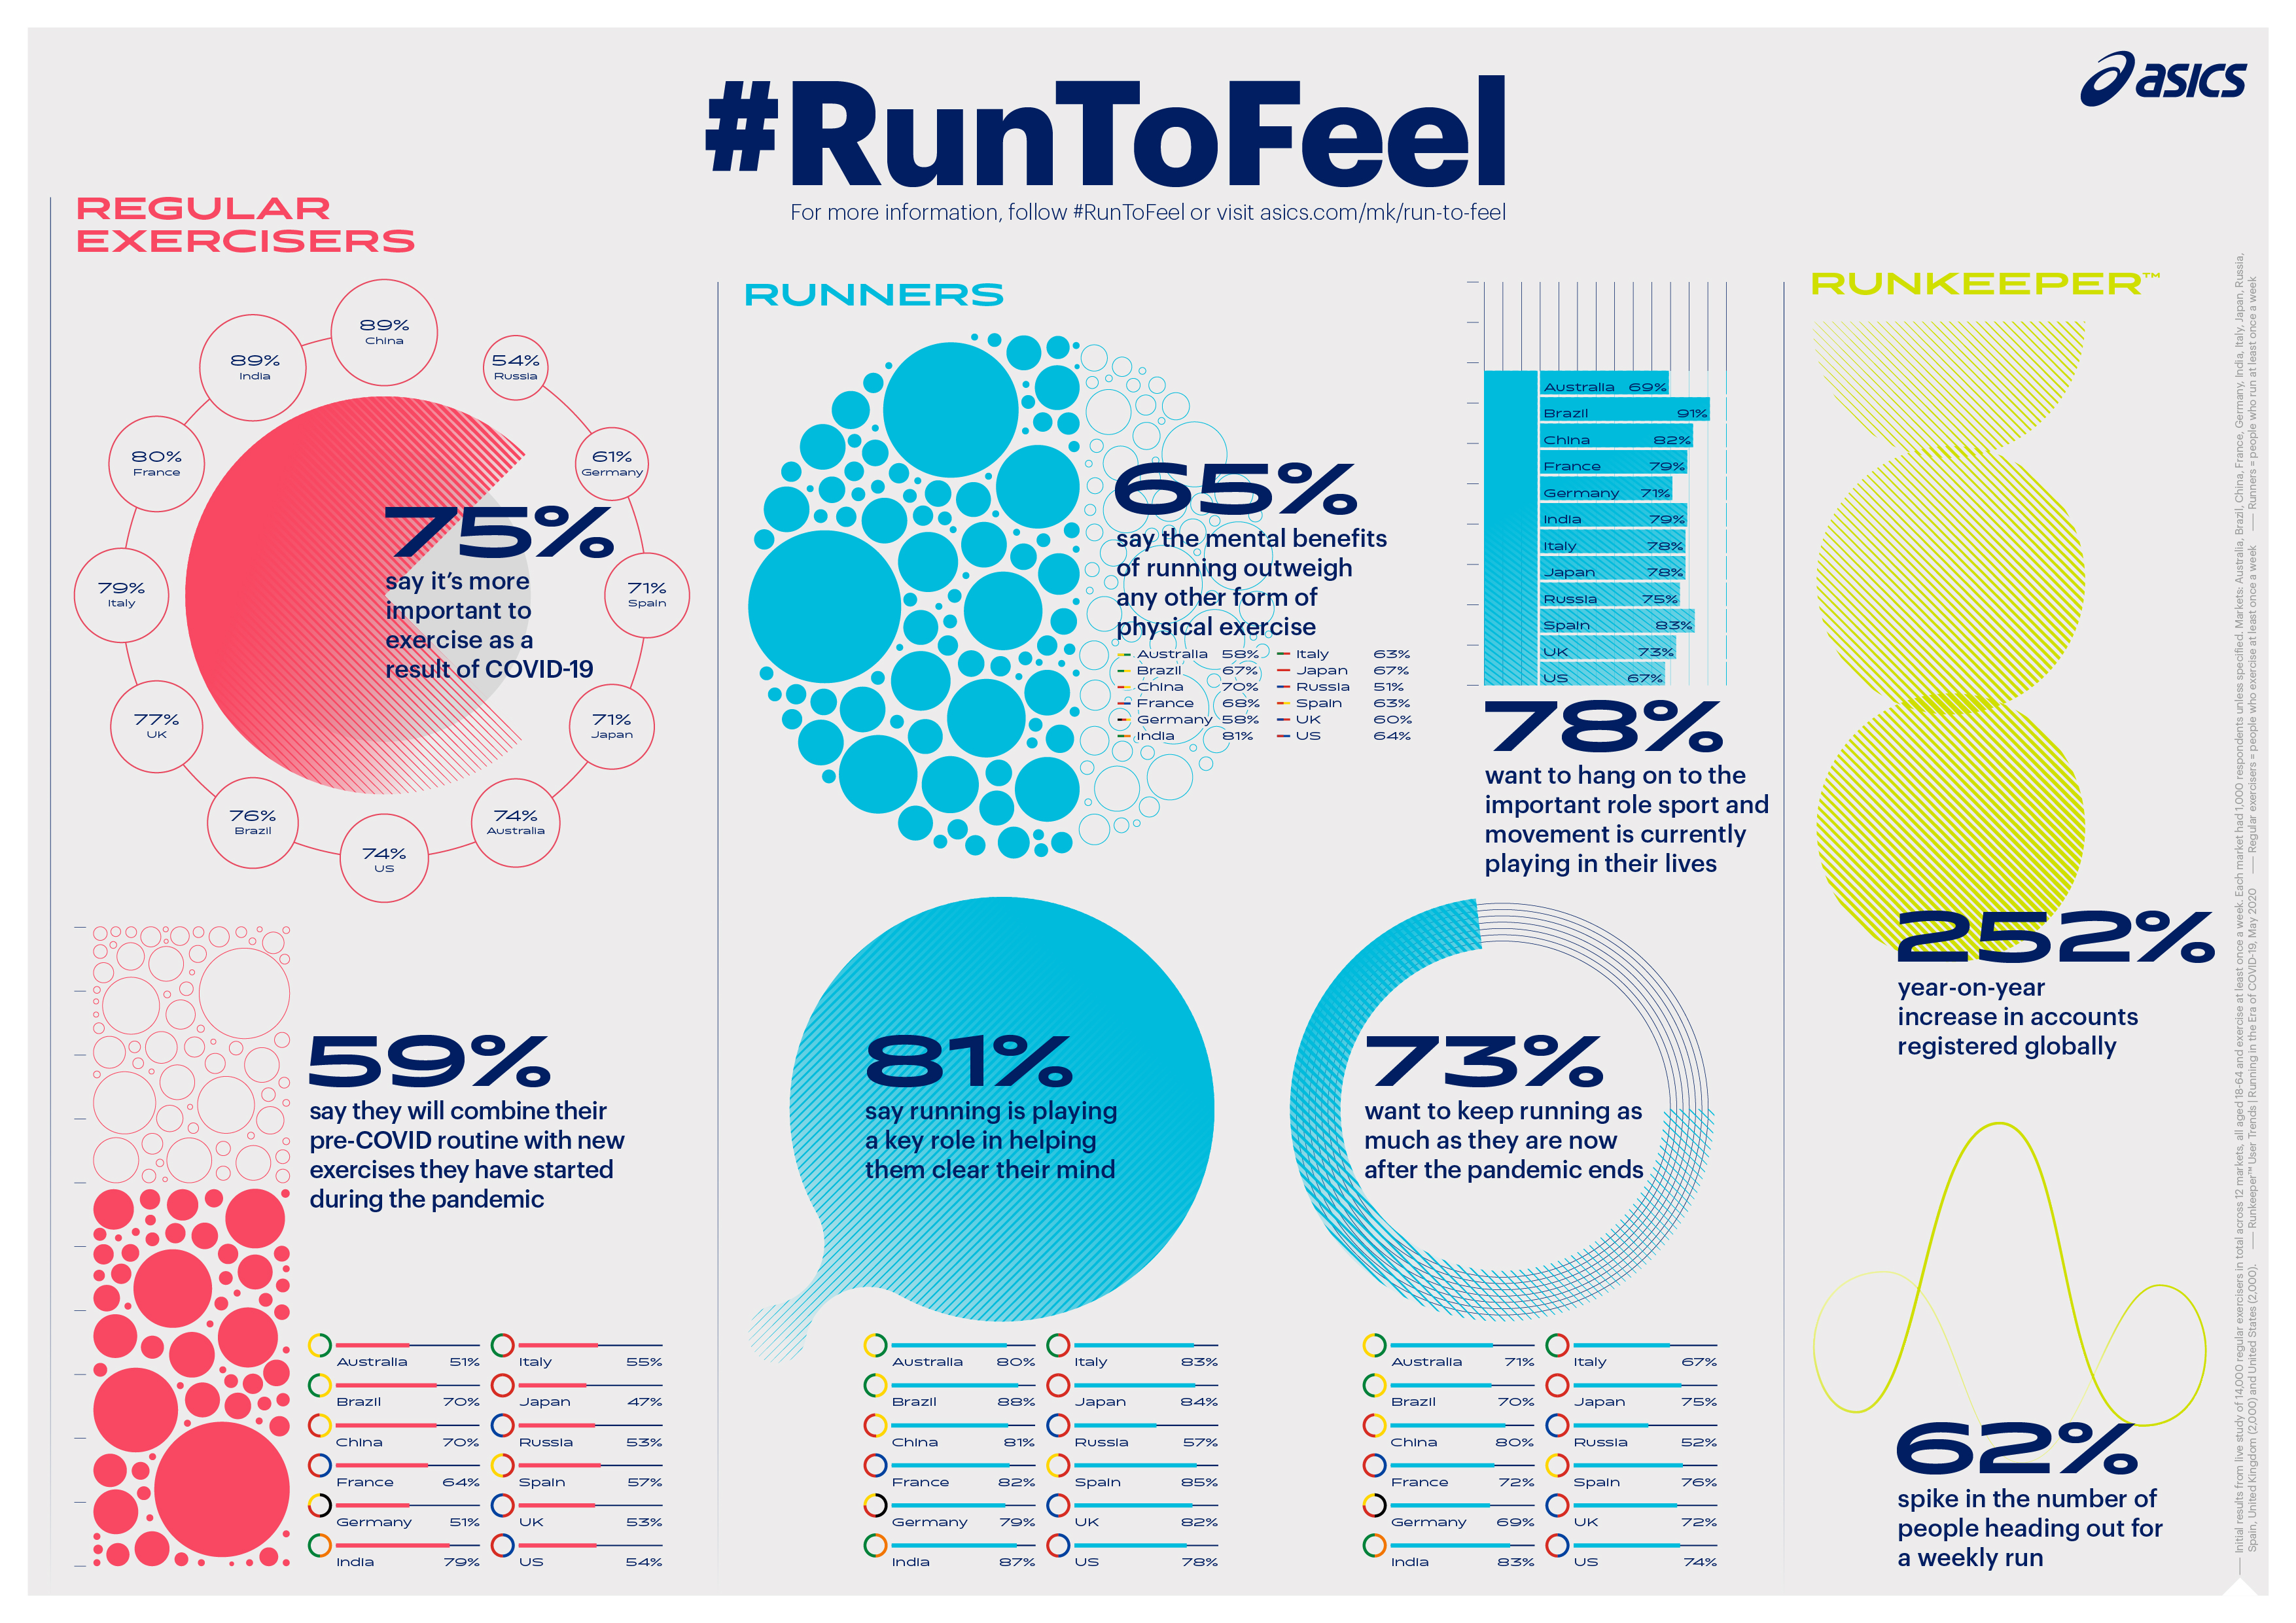 An image with graphics about running habits around the worldA